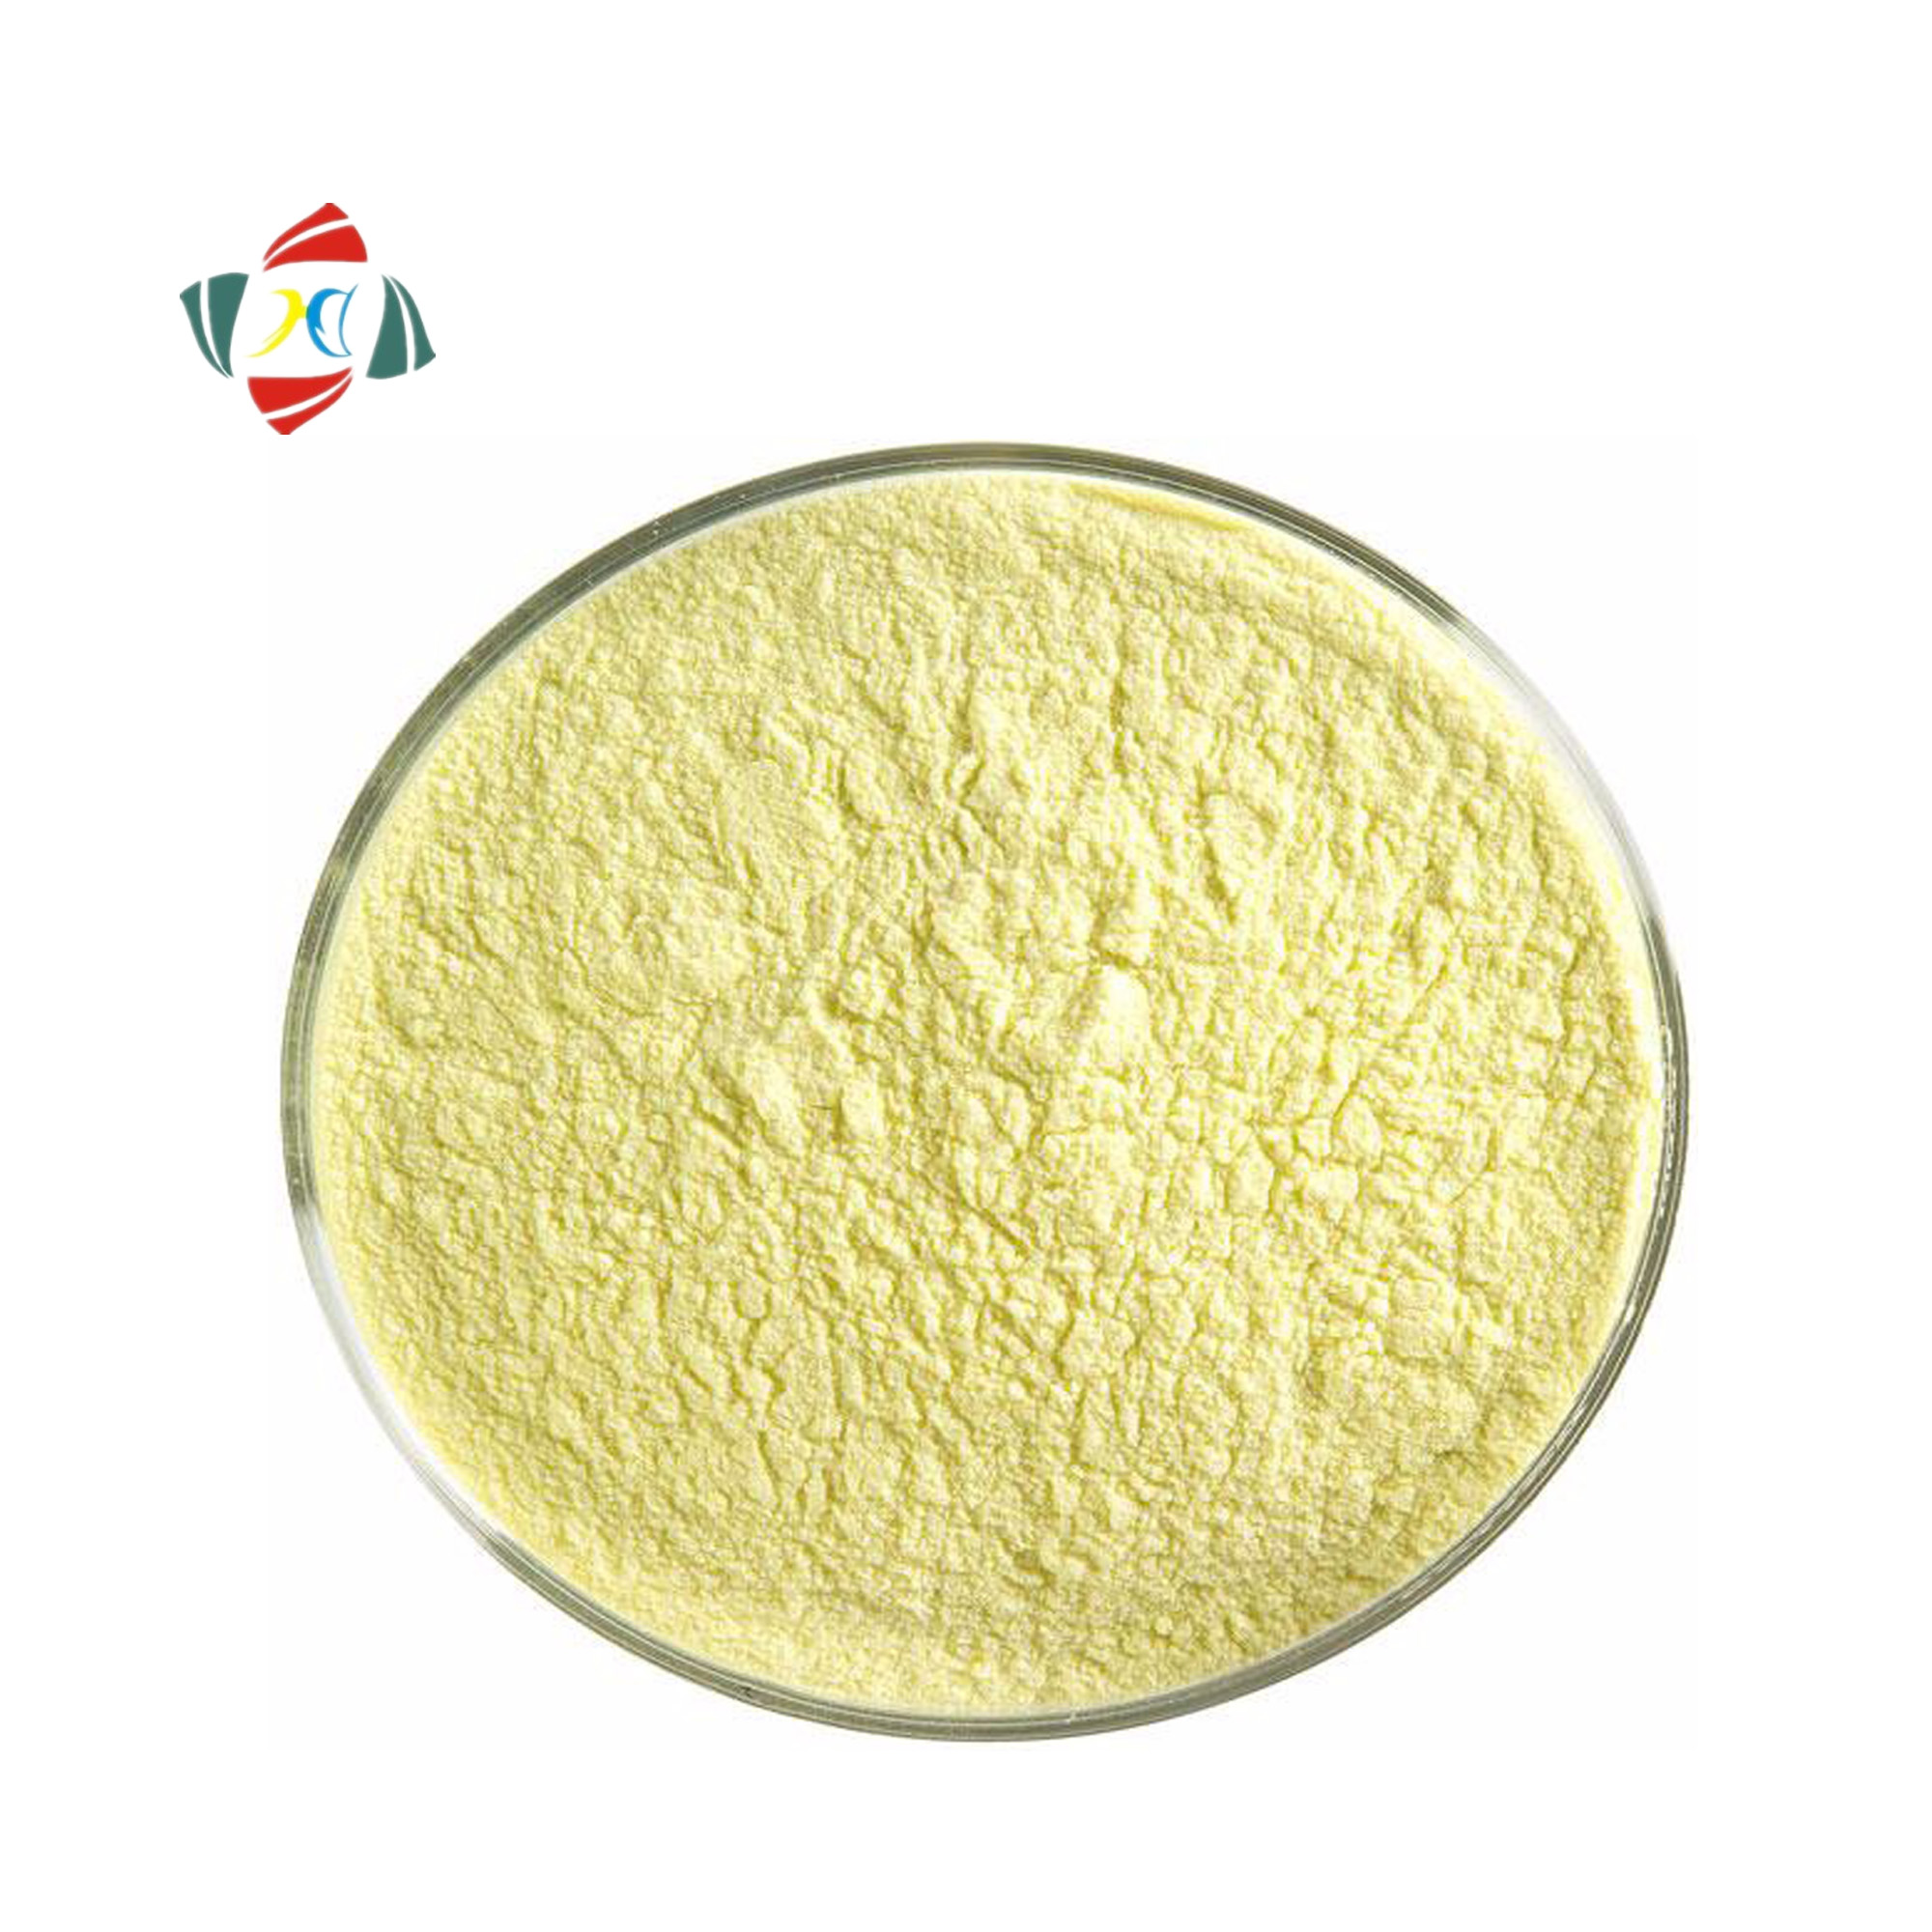 Wuhan HHD Quercetin Dihydrate CAS 6151-25-3 Standard Sample For Research